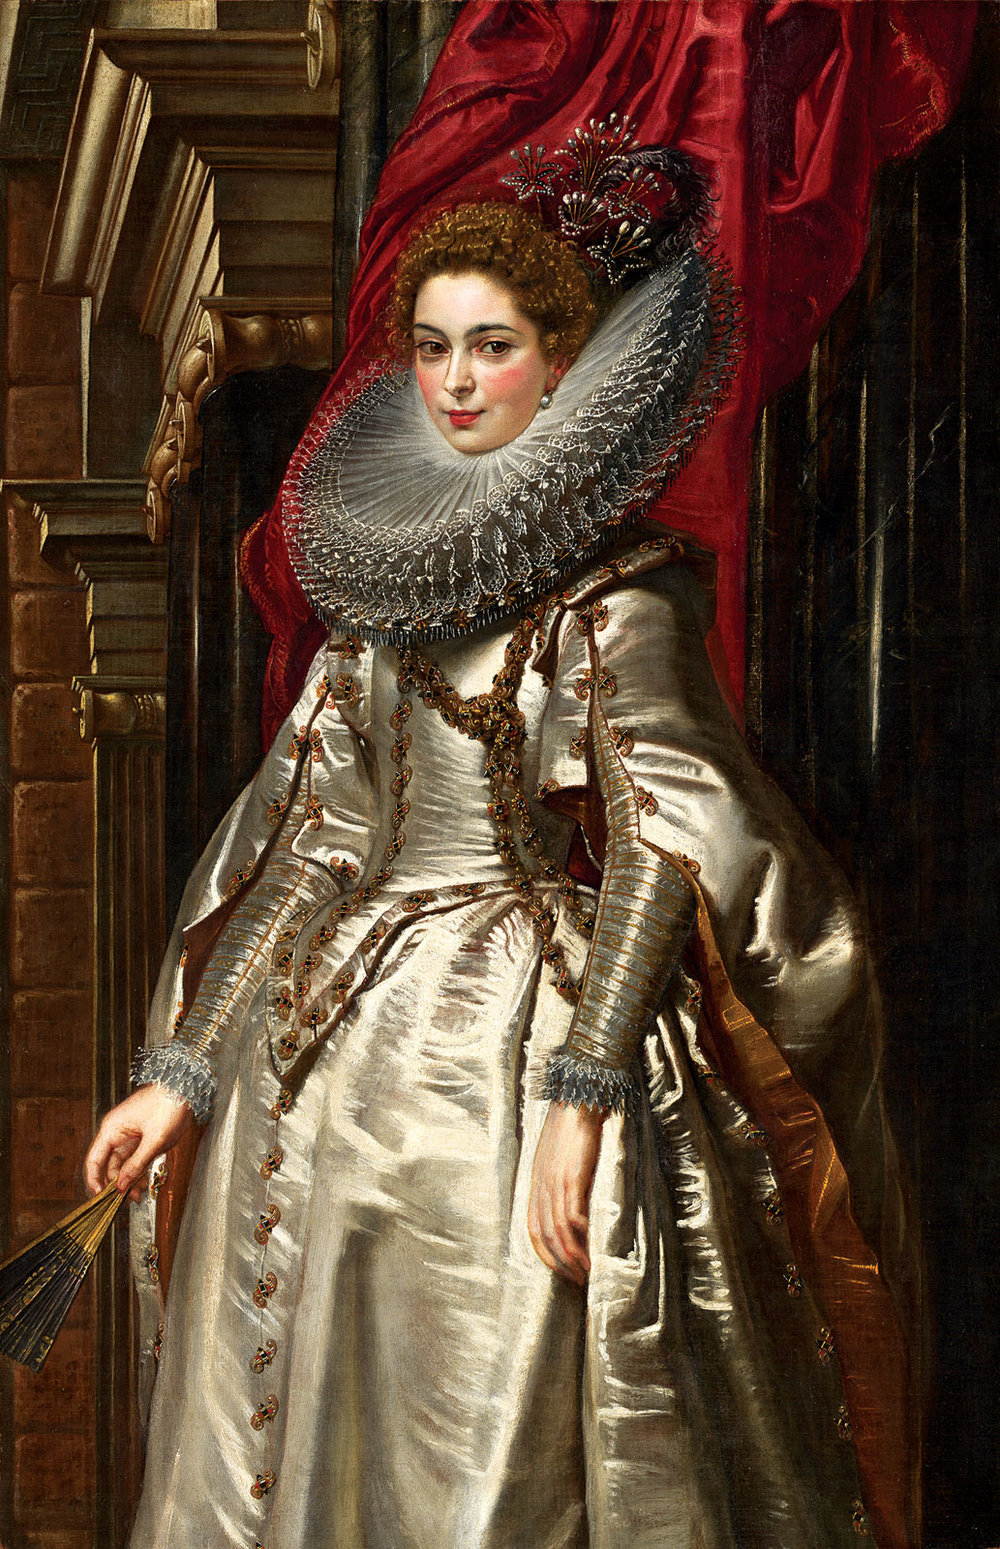 MARCHESA BRIGIDA SPINOLA DORIA by Peter Paul Rubens, Flemish, of oil on canvas, 1606.  Samuel H. Kress Collection. Courtesy of the National Gallery of Art.